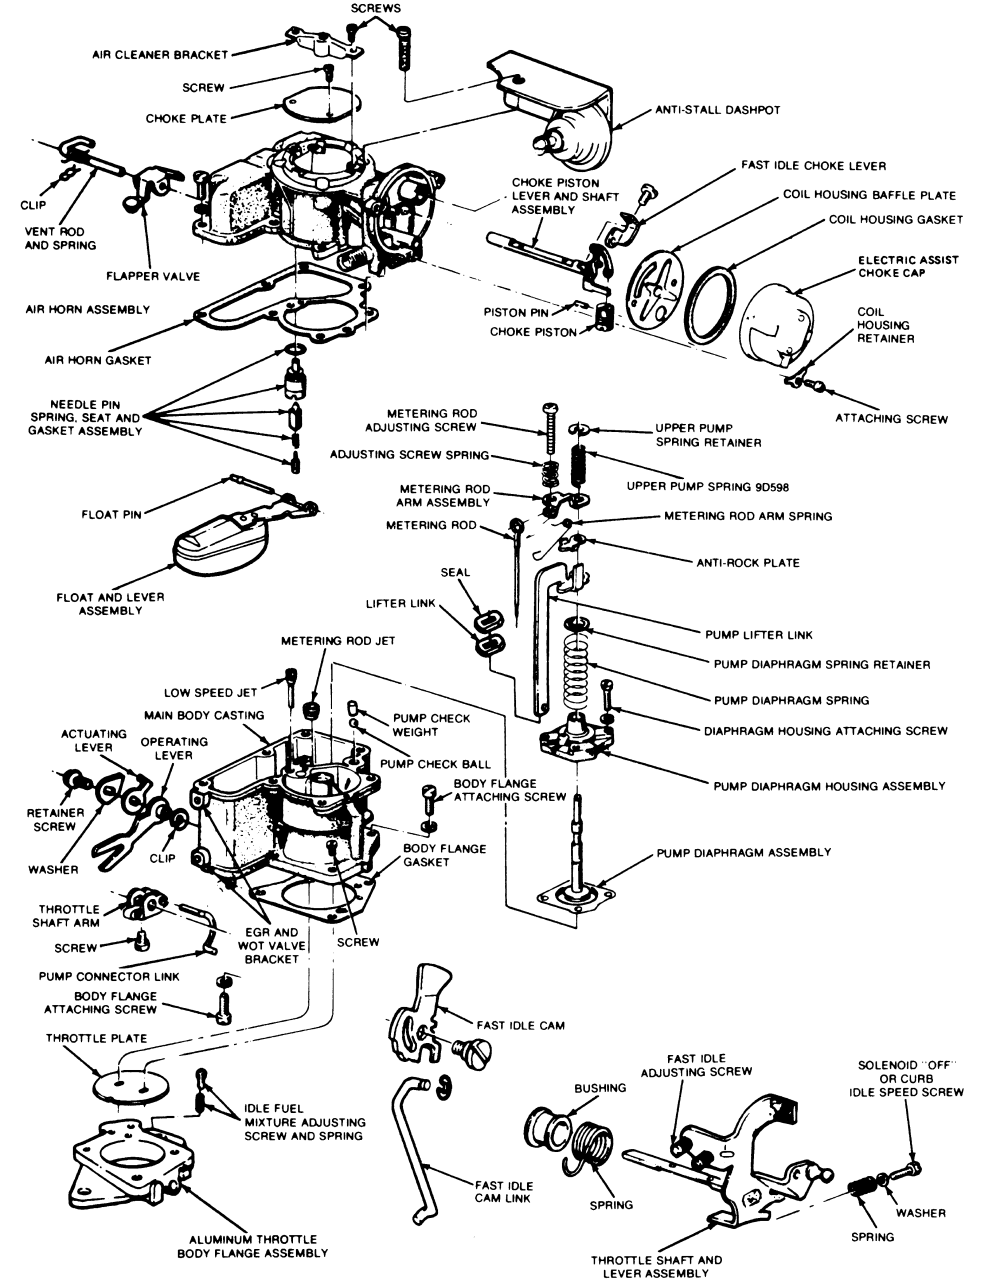 86 F150 4 9 Need Help With Carb Please Ford Truck Club Forum F150 Ford F150 Line Diagram